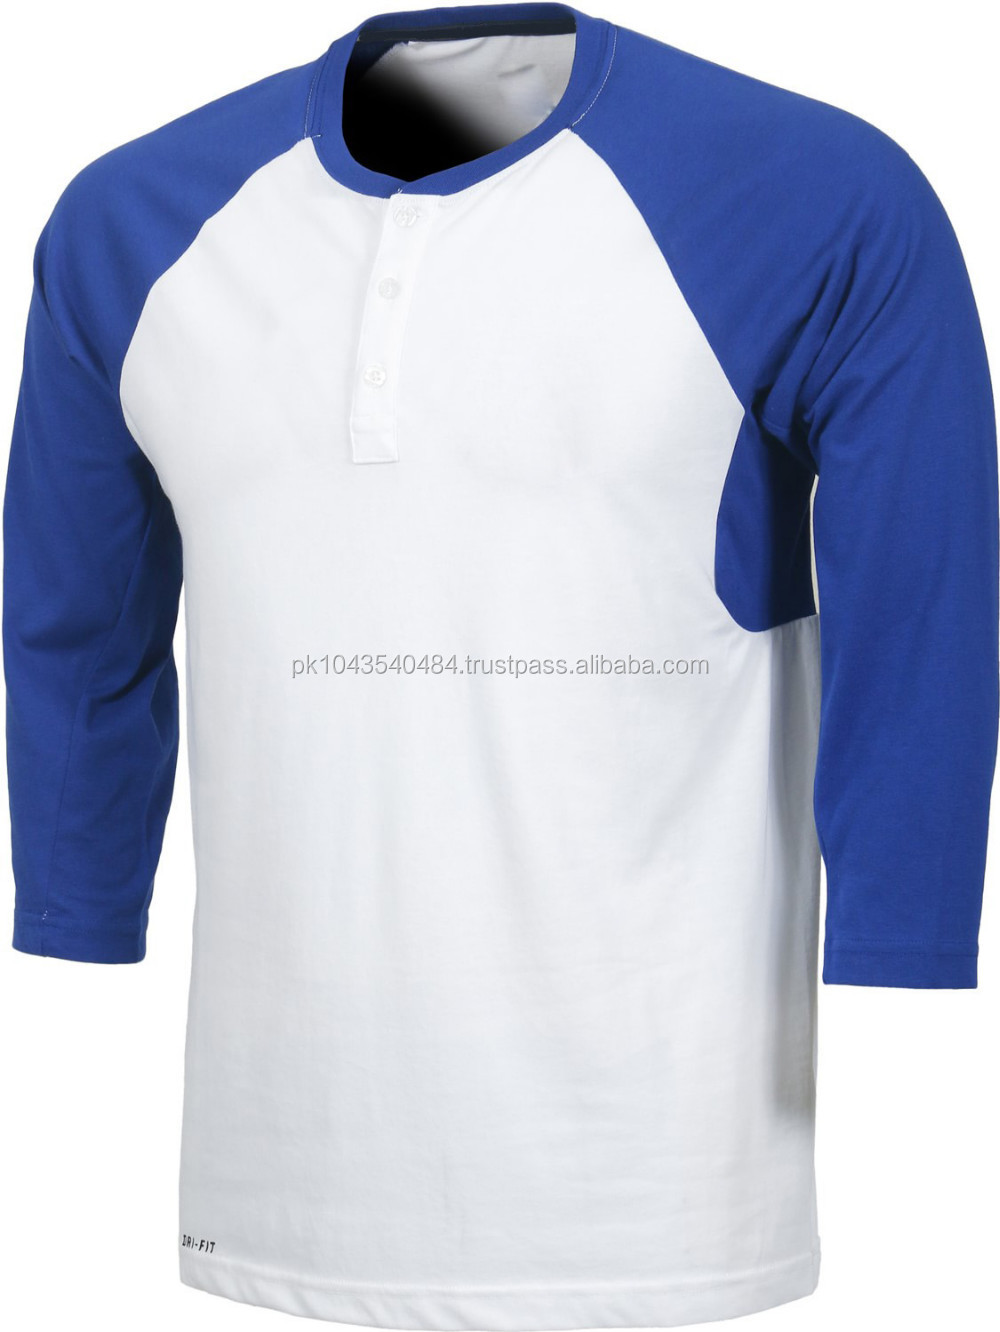 Custom design sublimated dry fit t shirt buy design your for Buy dri fit shirts